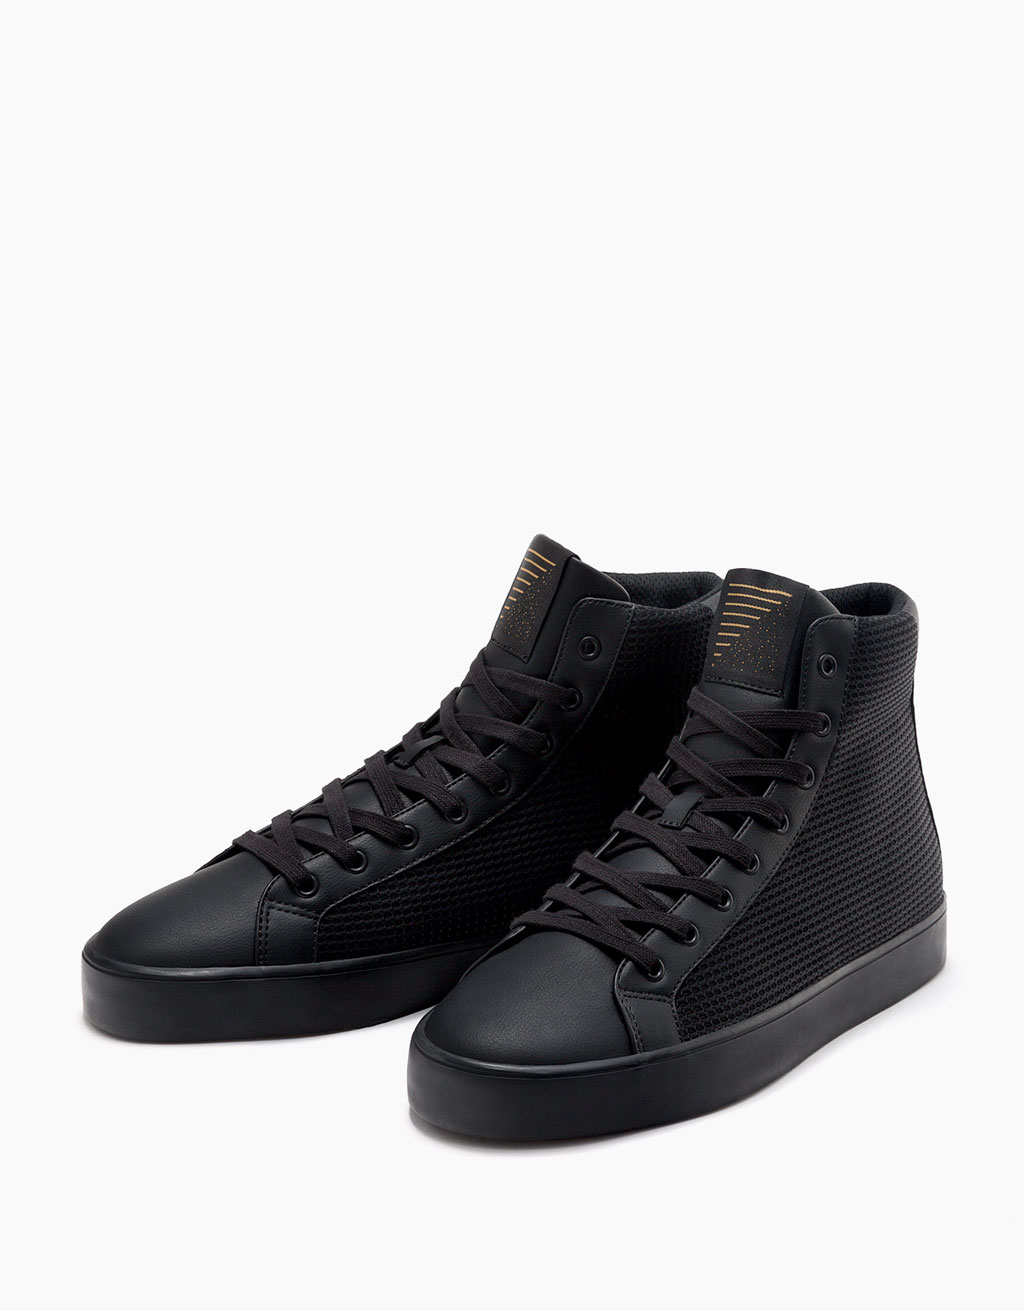 Men's fabric  high top sneakers